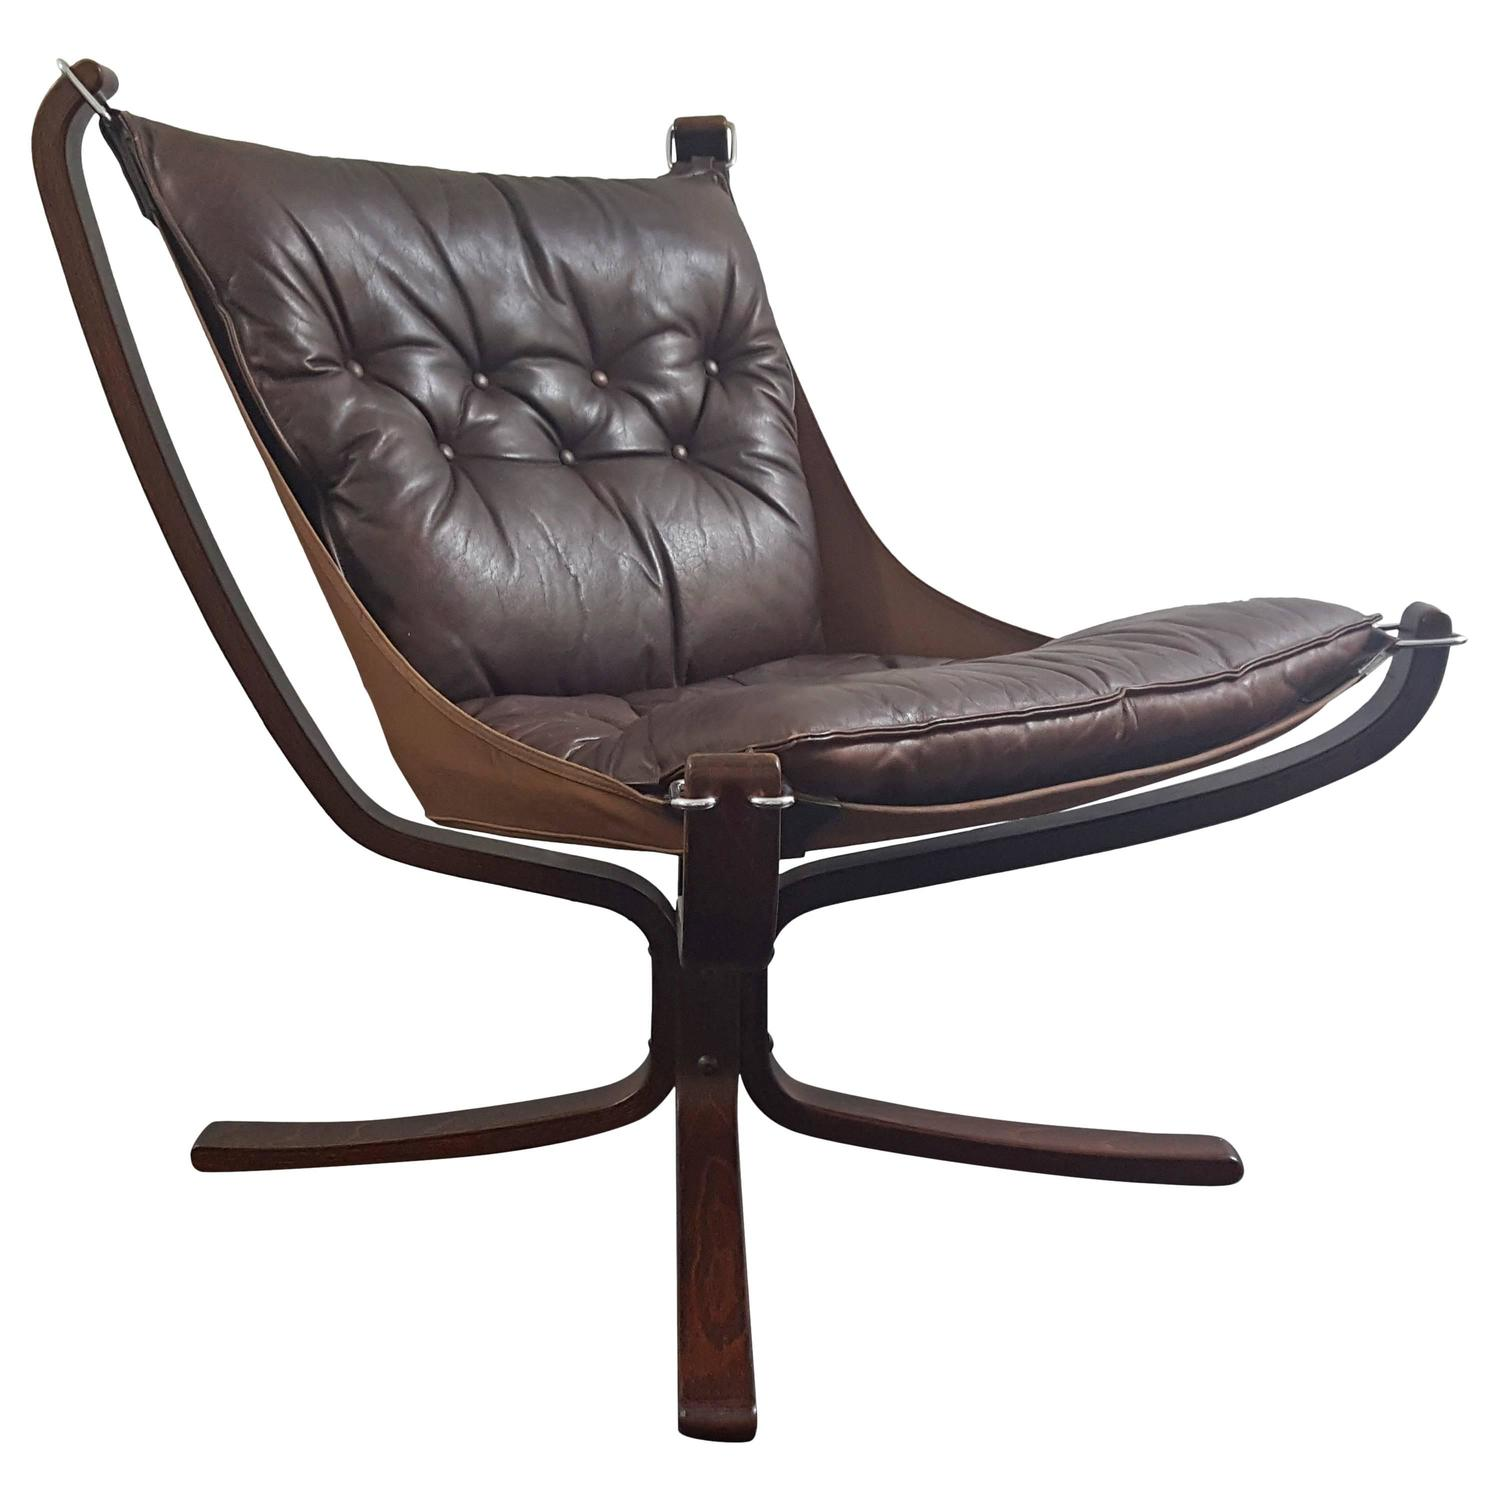 Sigurd Ressell Lounge Chairs - 35 For Sale at 1stdibs